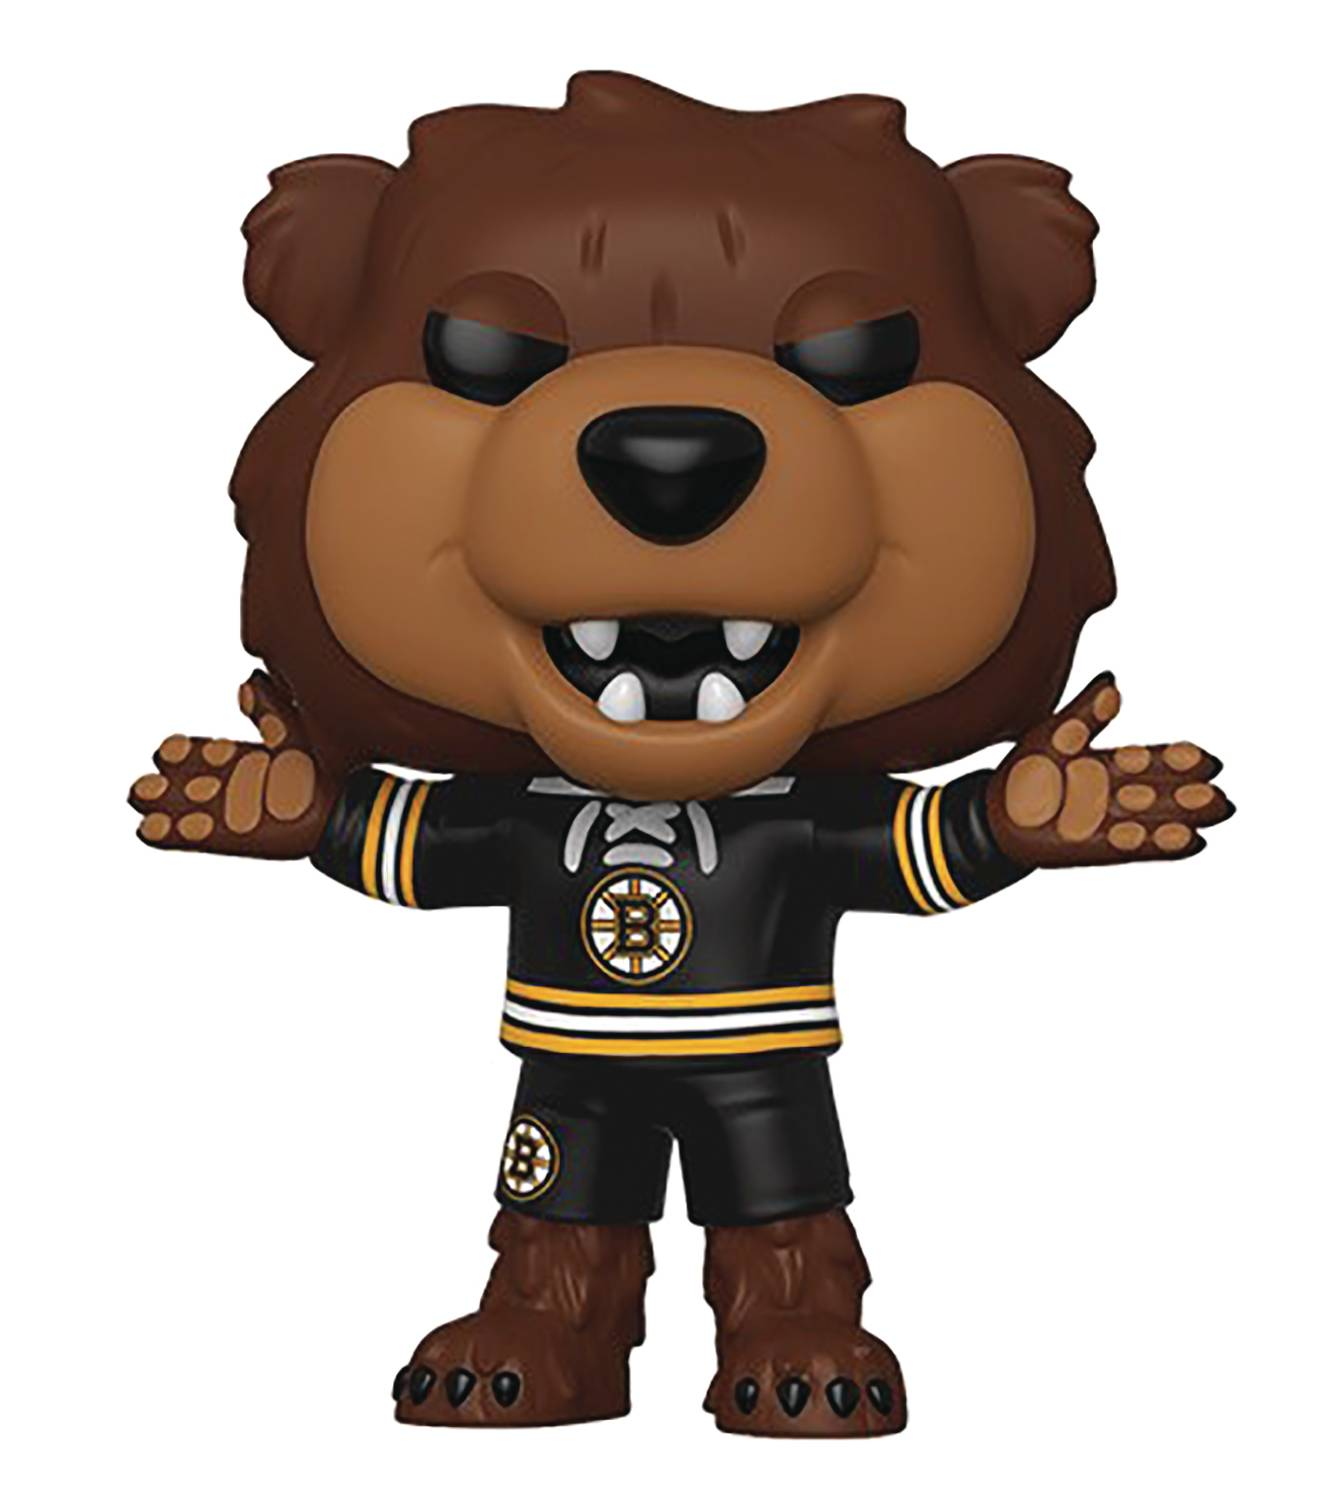 POP MASCOTS BRUINS BLADES VINYL FIG